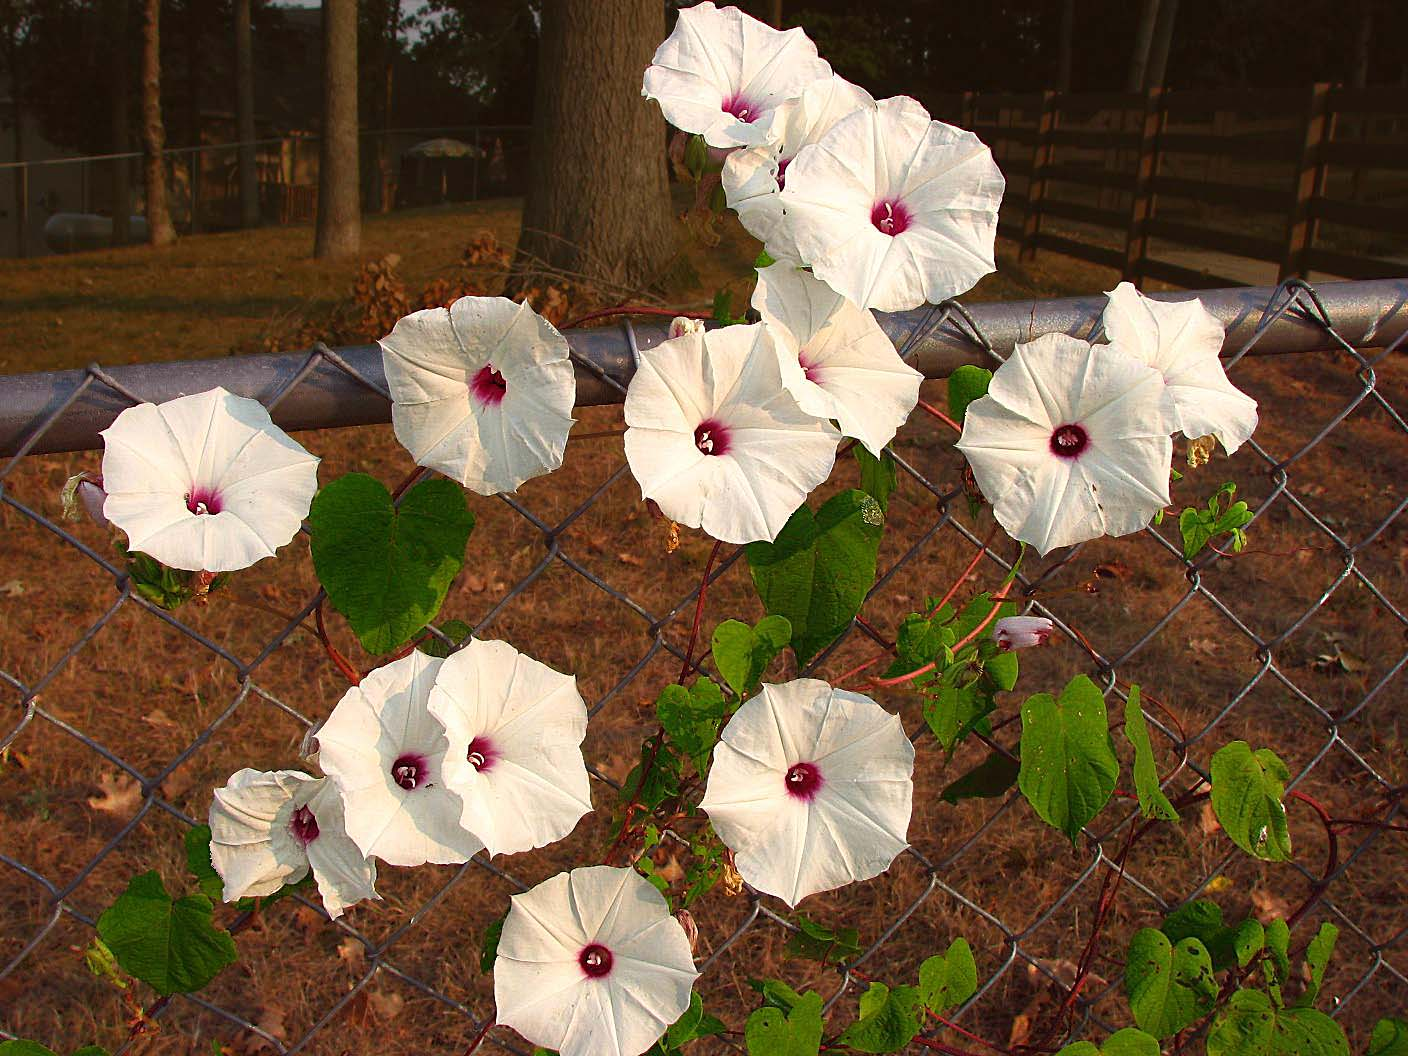 Ipomoea pandurata (man of the earth, wild potato vine)